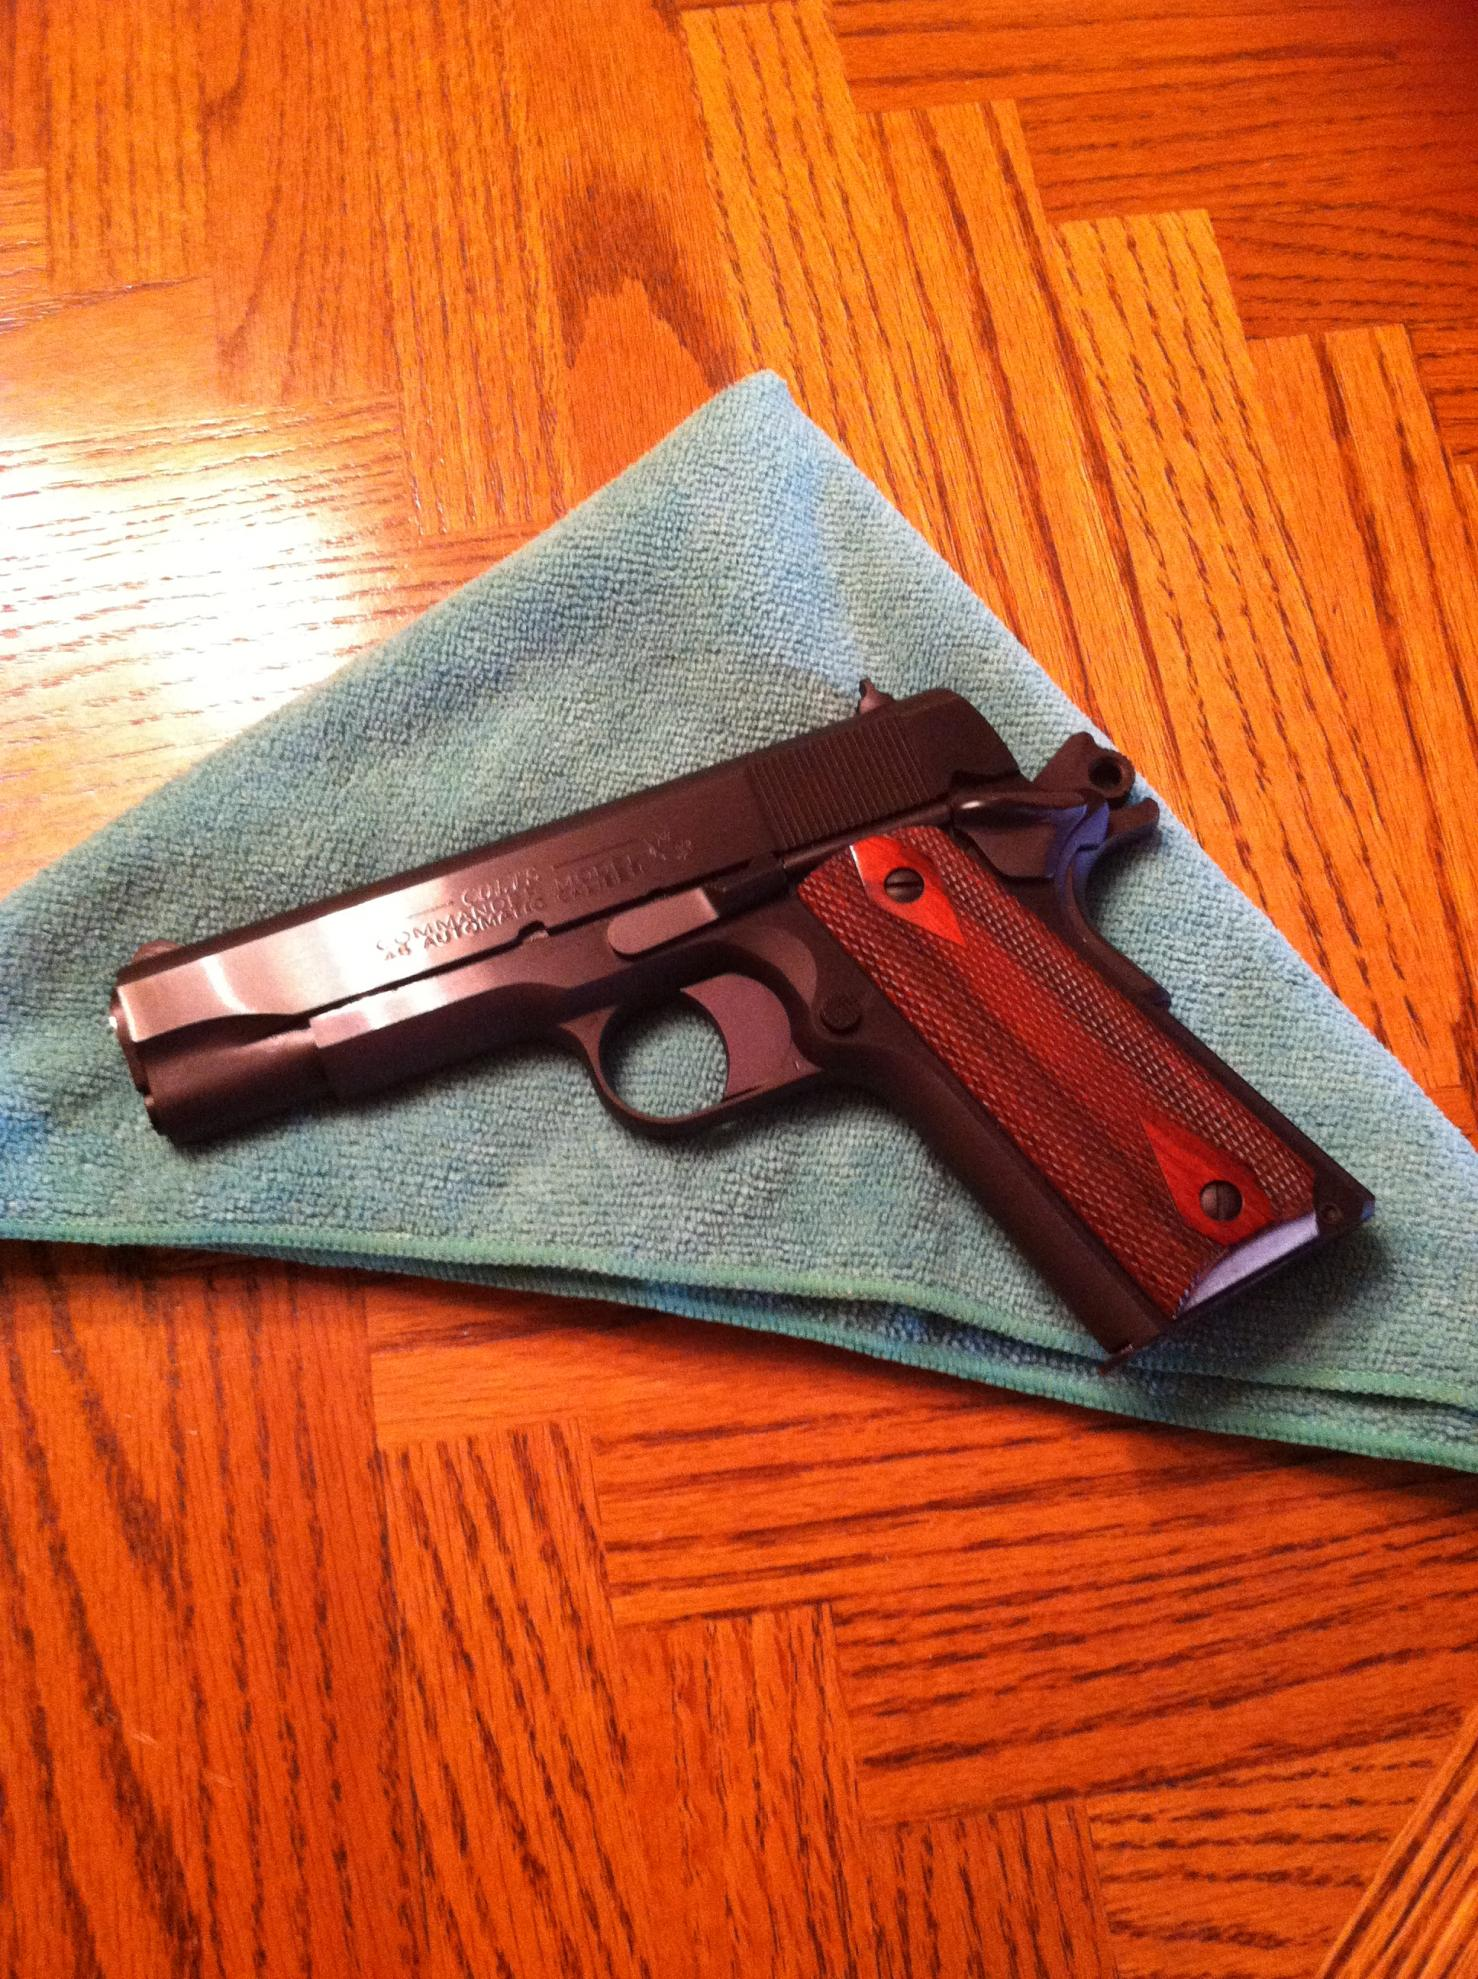 Almost NIB Series 80 Colt 1911 for $650??? - Page 2